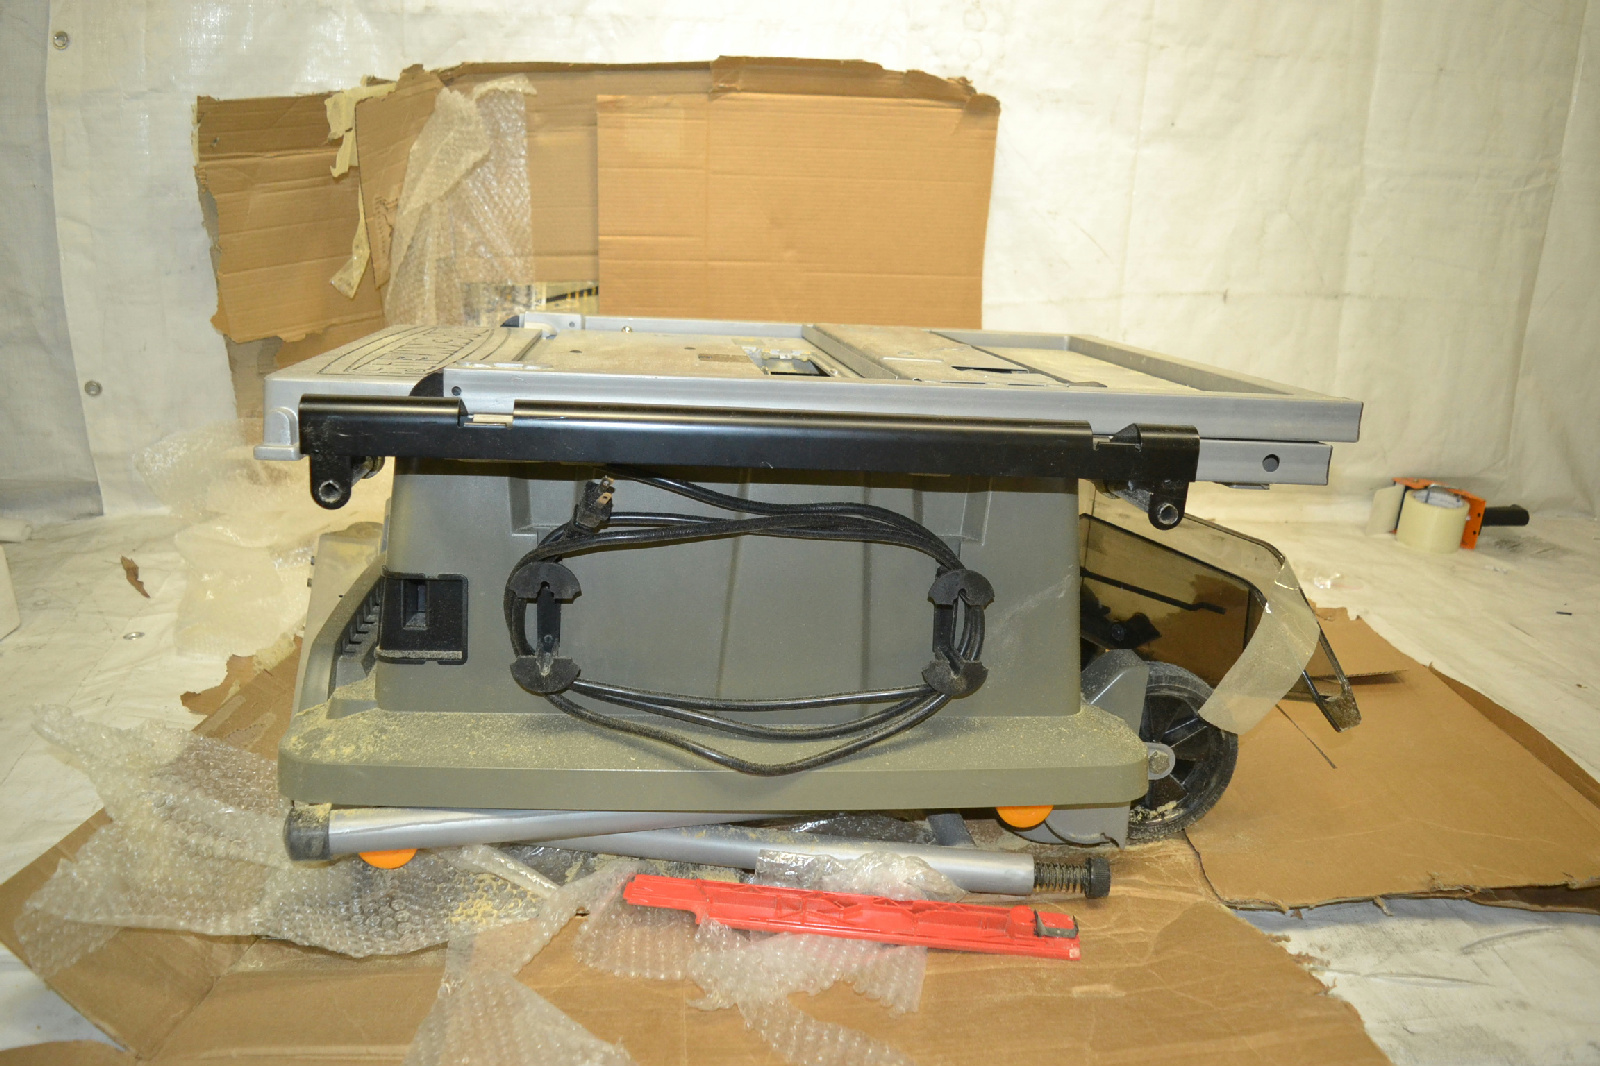 Rockwell rk7240 1 13 amp 10 inch table saw with stand ebay for 13 amp table saw